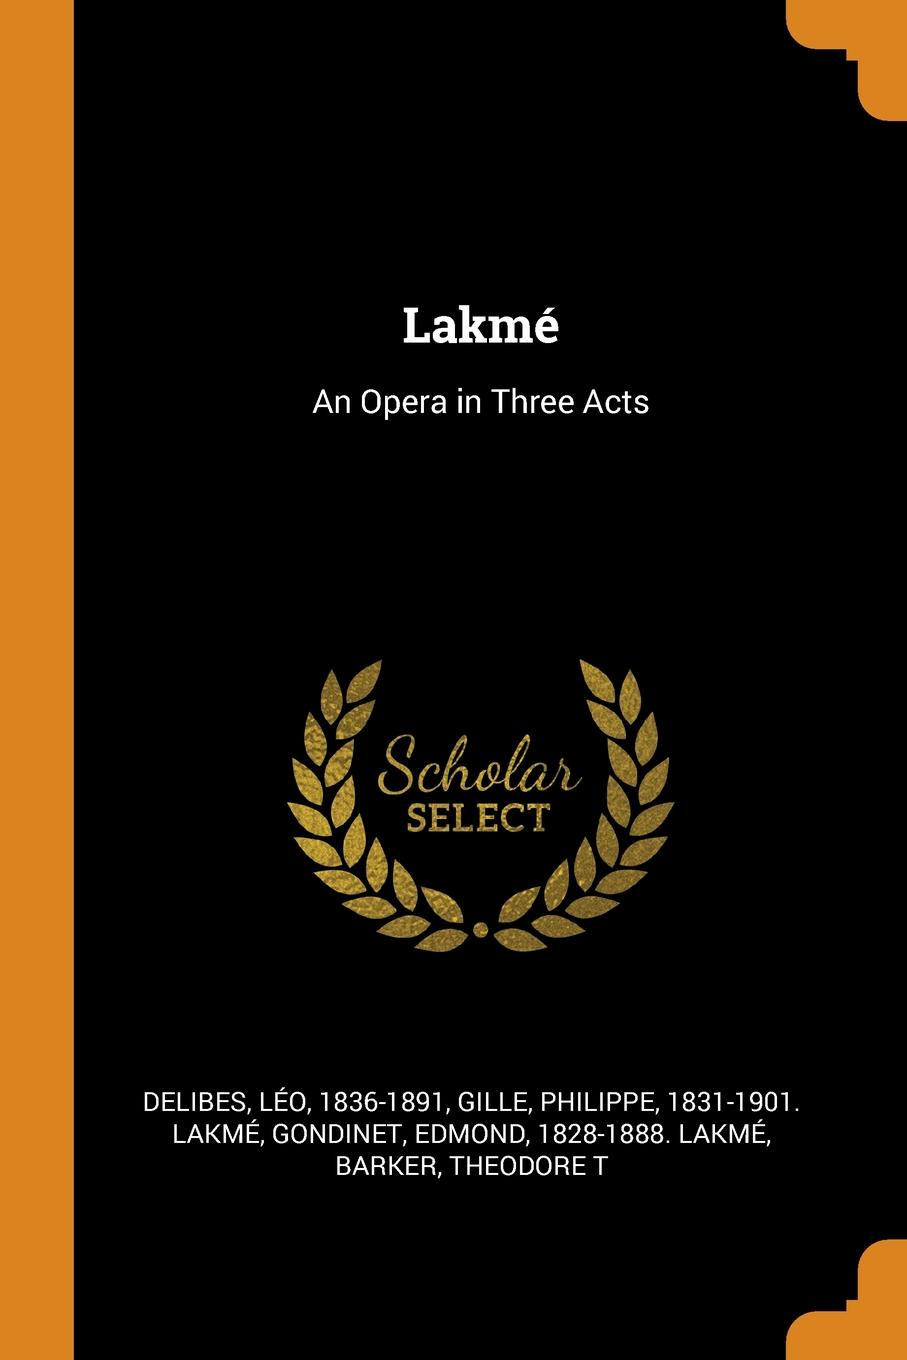 Lakme. An Opera in Three Acts